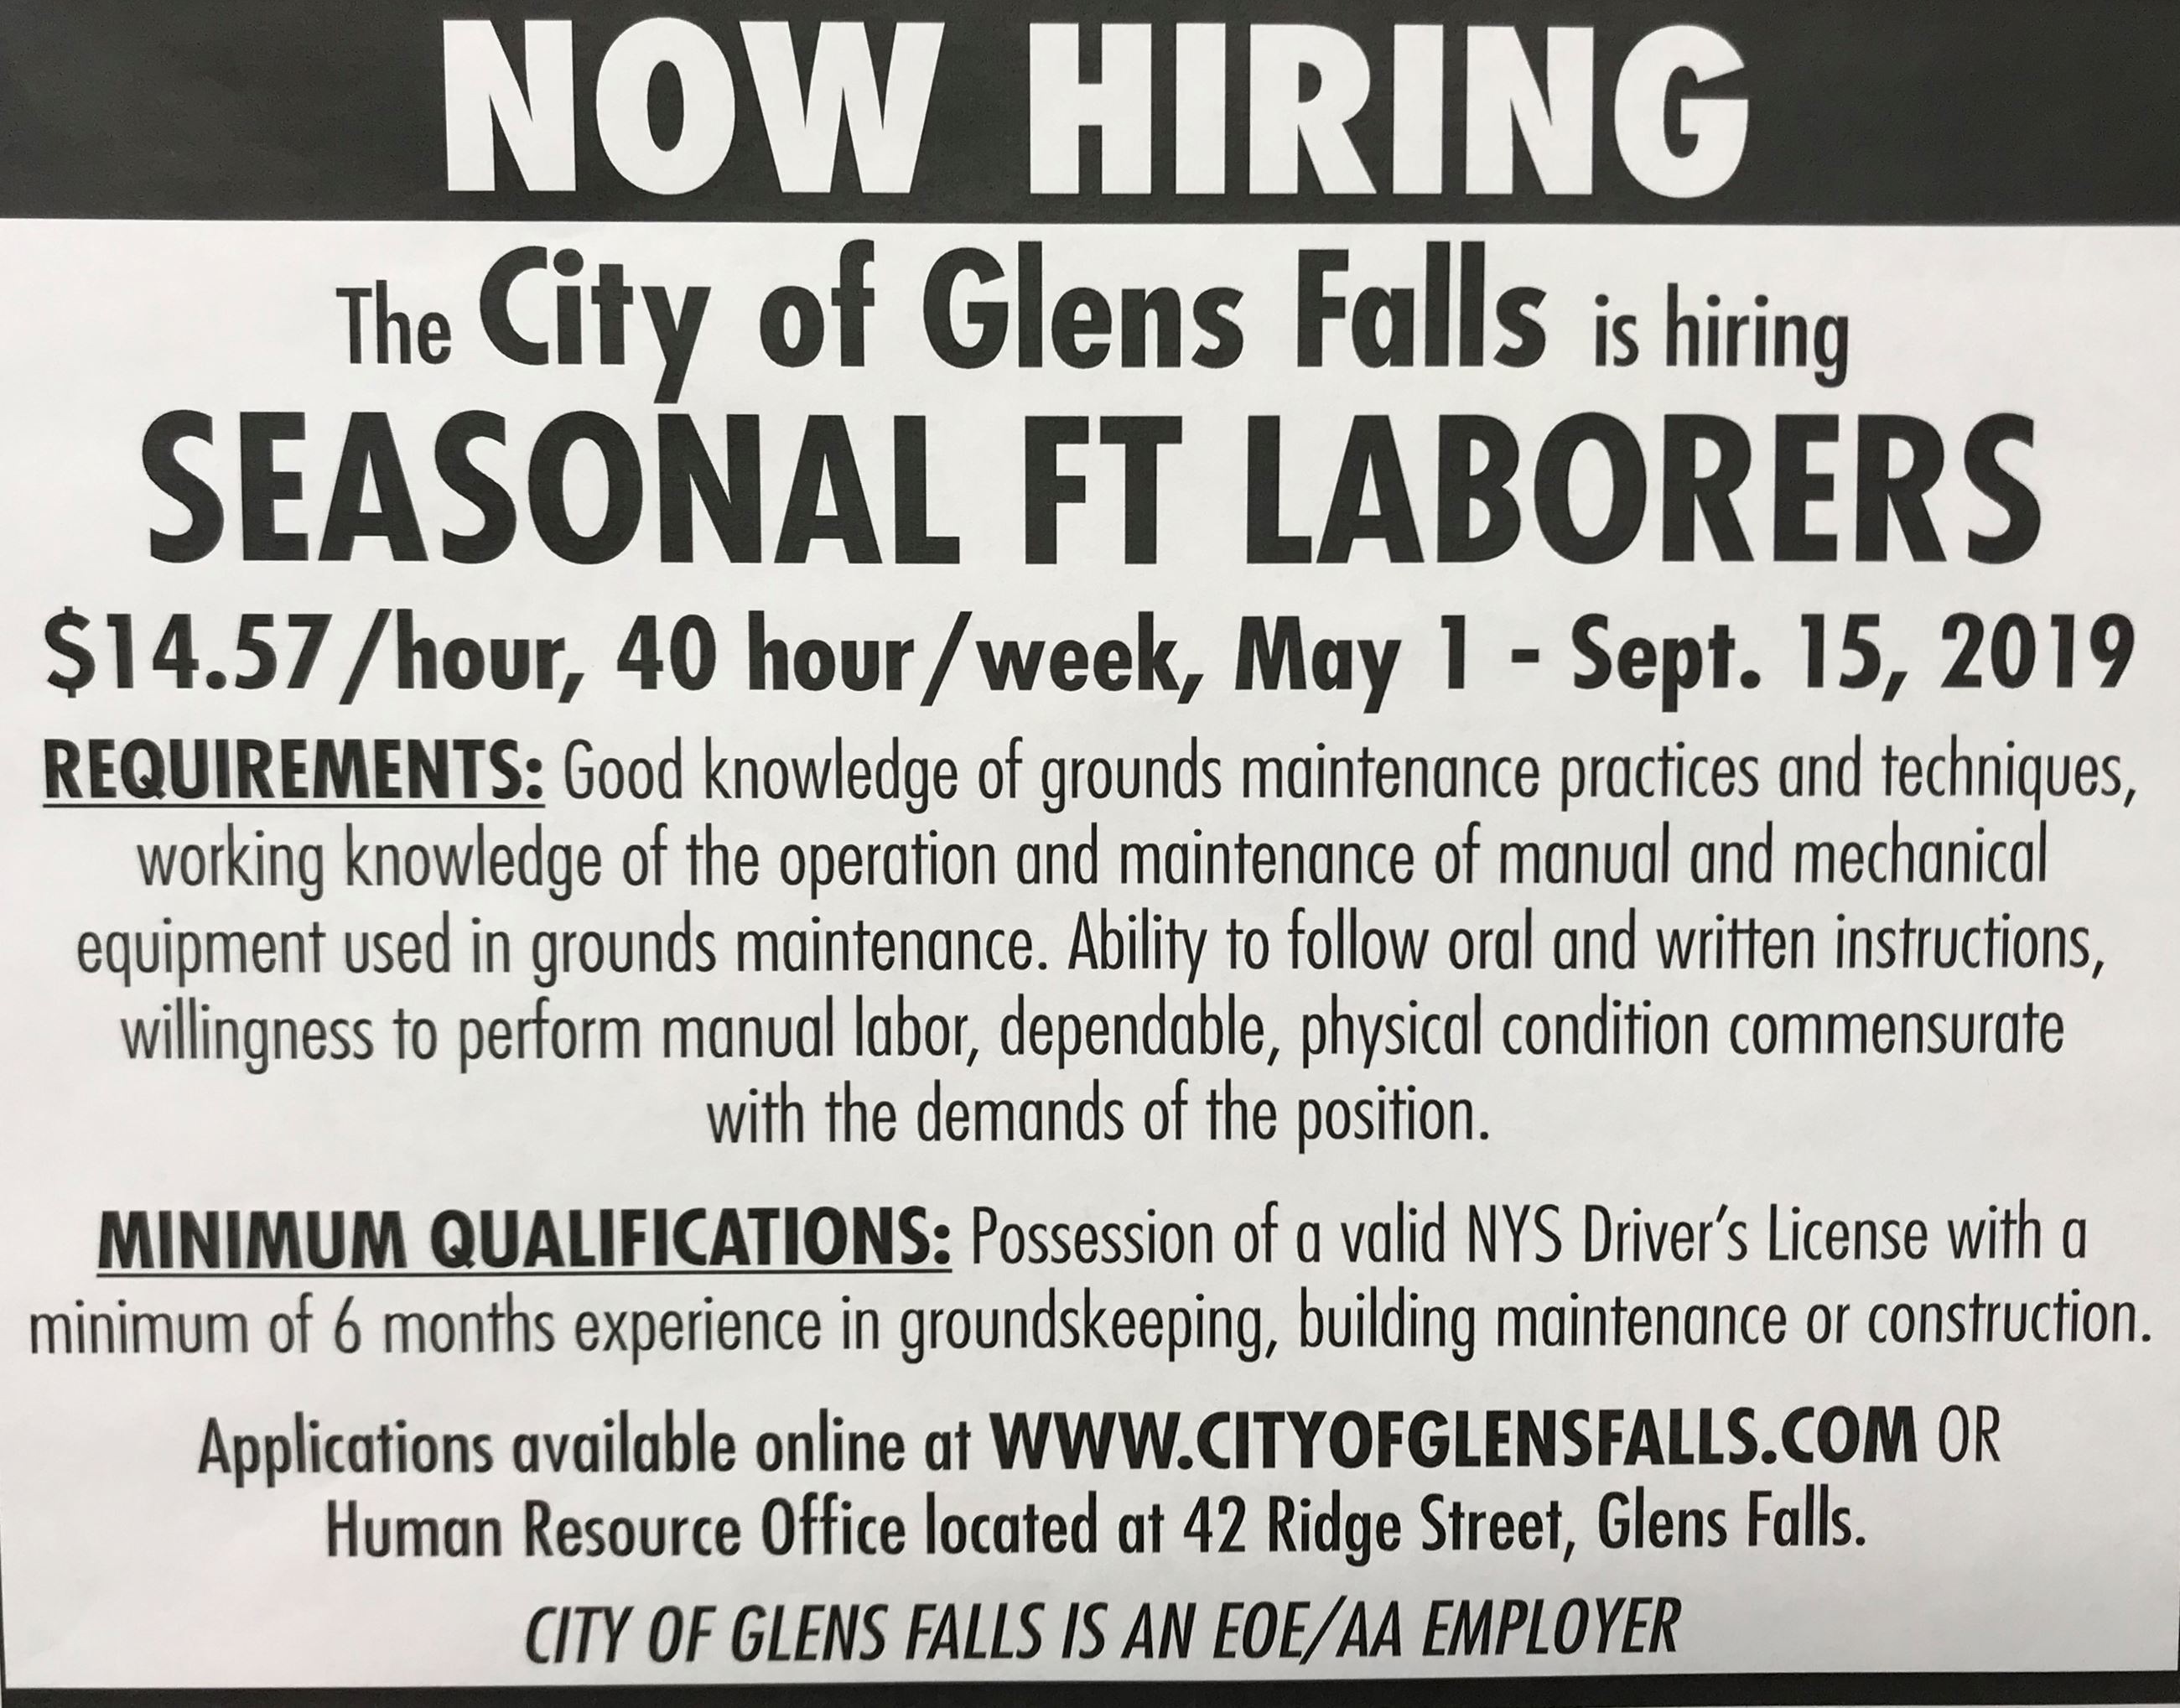 Seasonal Full Time Laborers